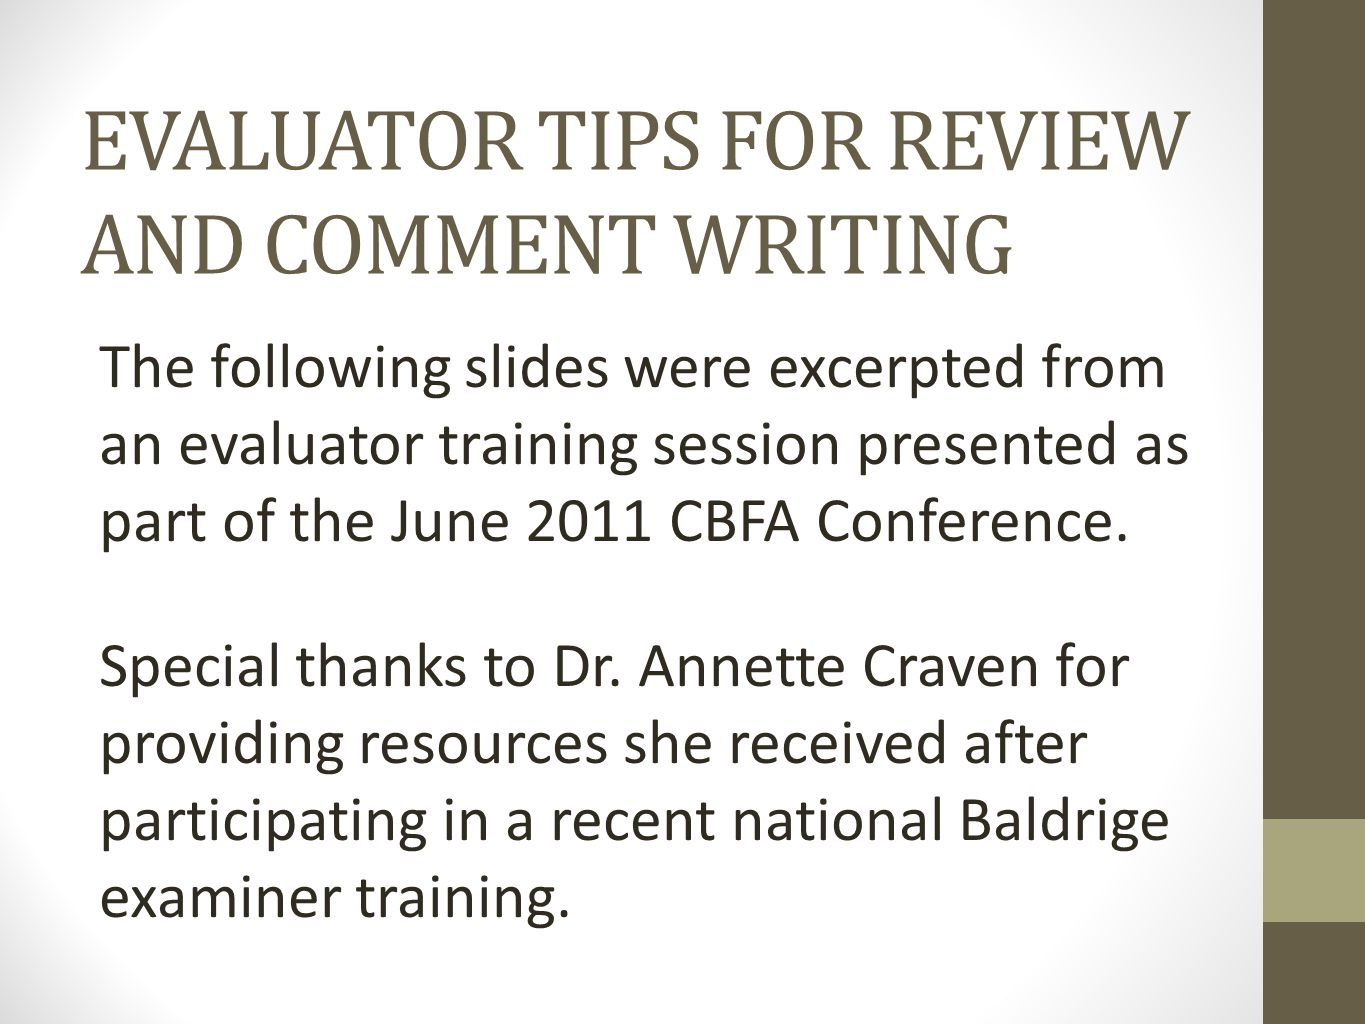 EVALUATOR TIPS FOR REVIEW AND COMMENT WRITING The following slides were excerpted from an evaluator training session presented as part of the June 2011 CBFA Conference.